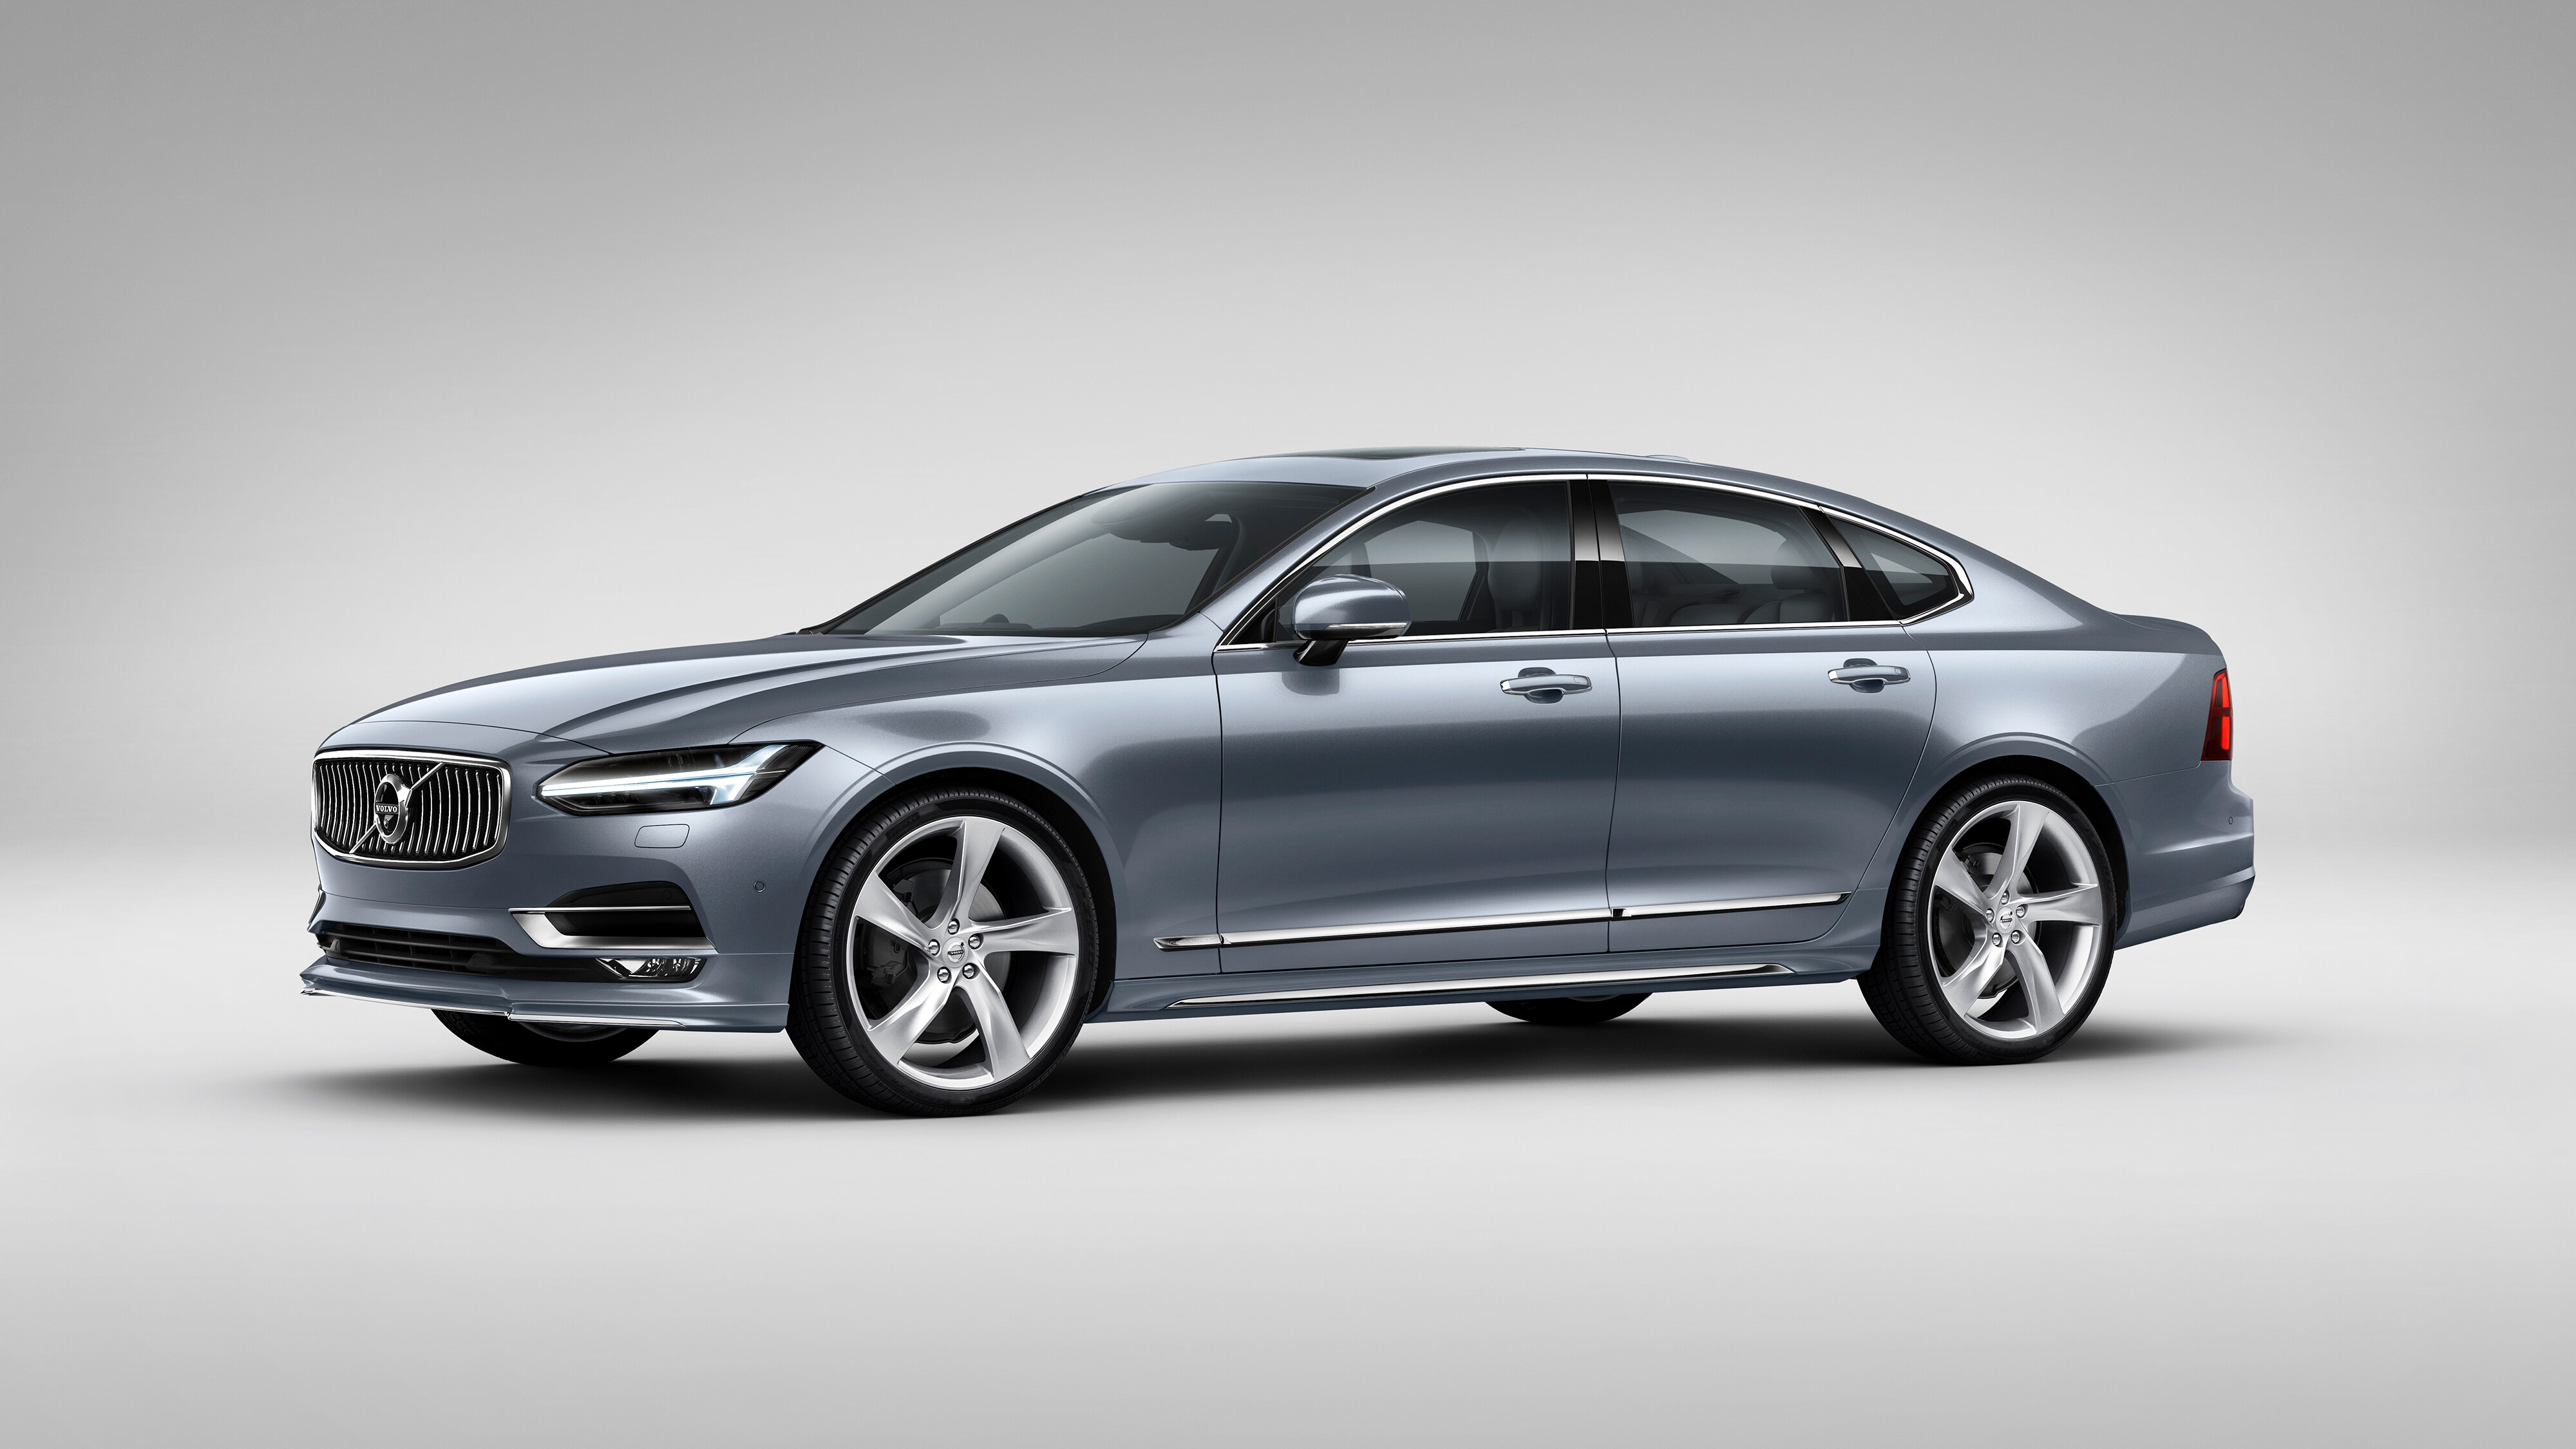 Front side view of the Volvo S90 Incsription